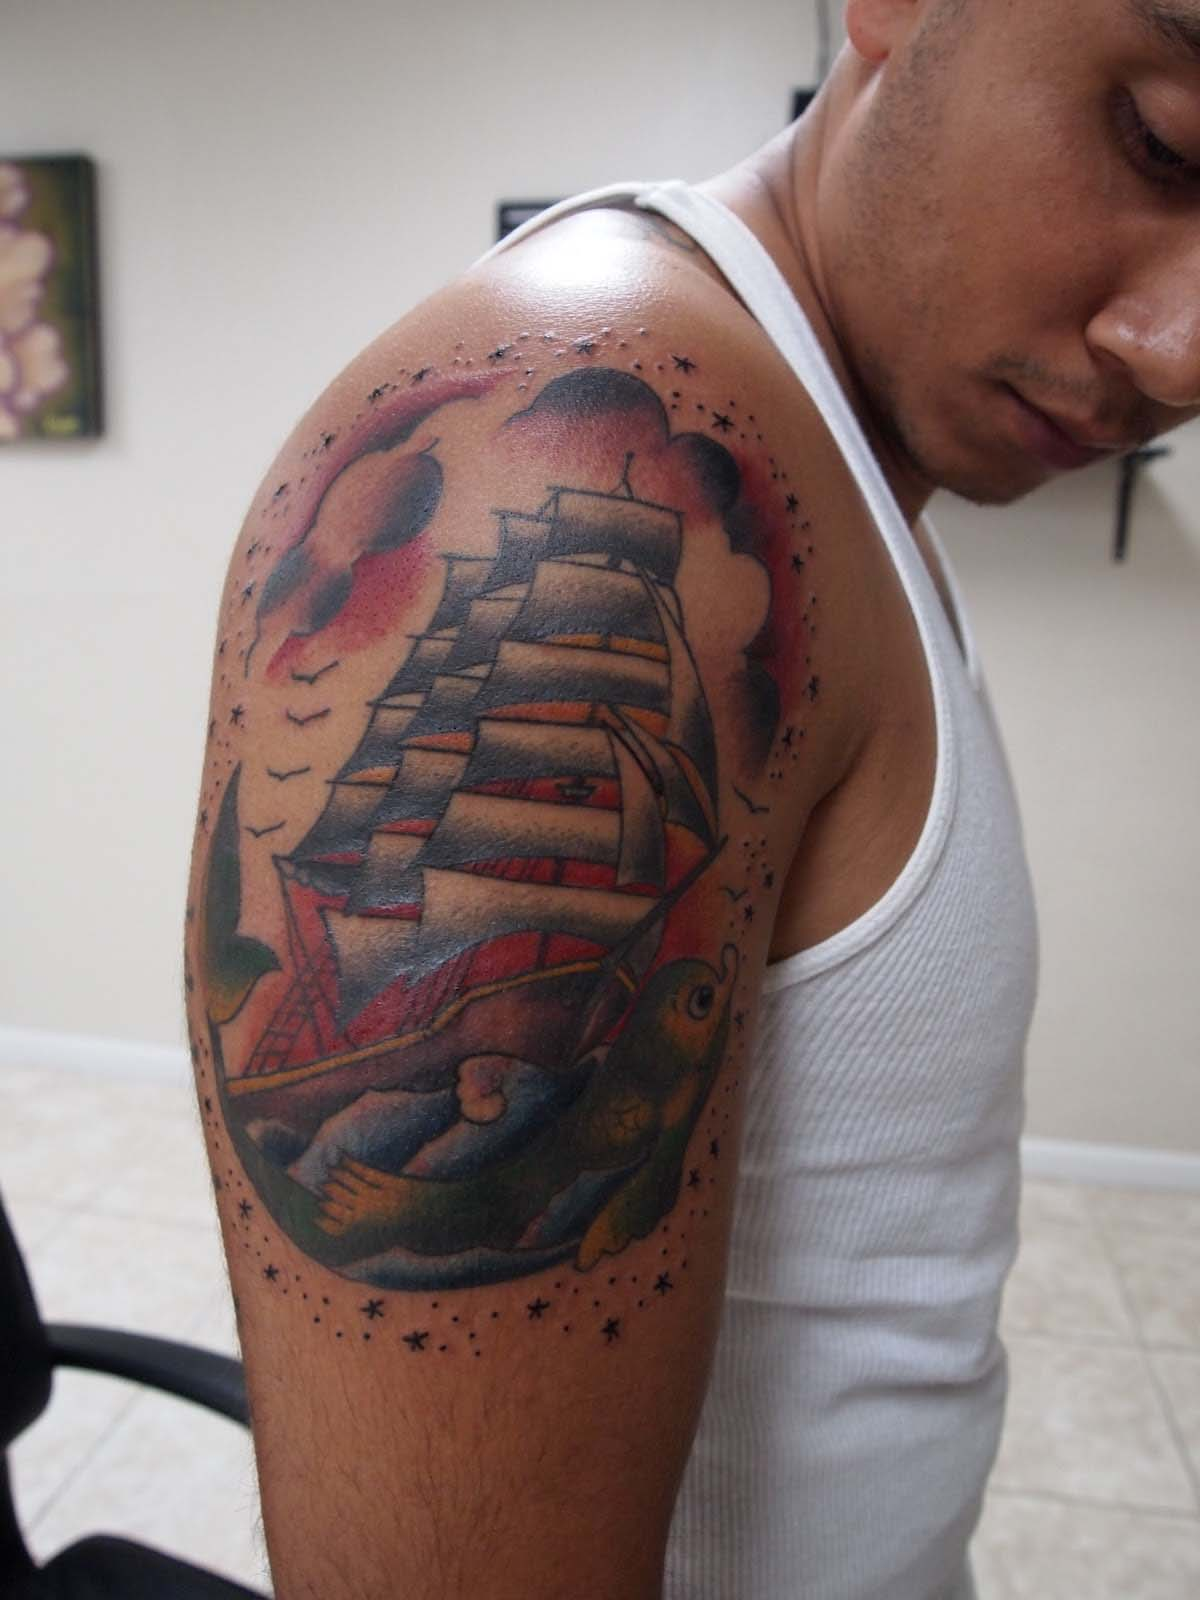 3d tattoo on biceps and triceps 08 tattoosphotogallery.blo.com